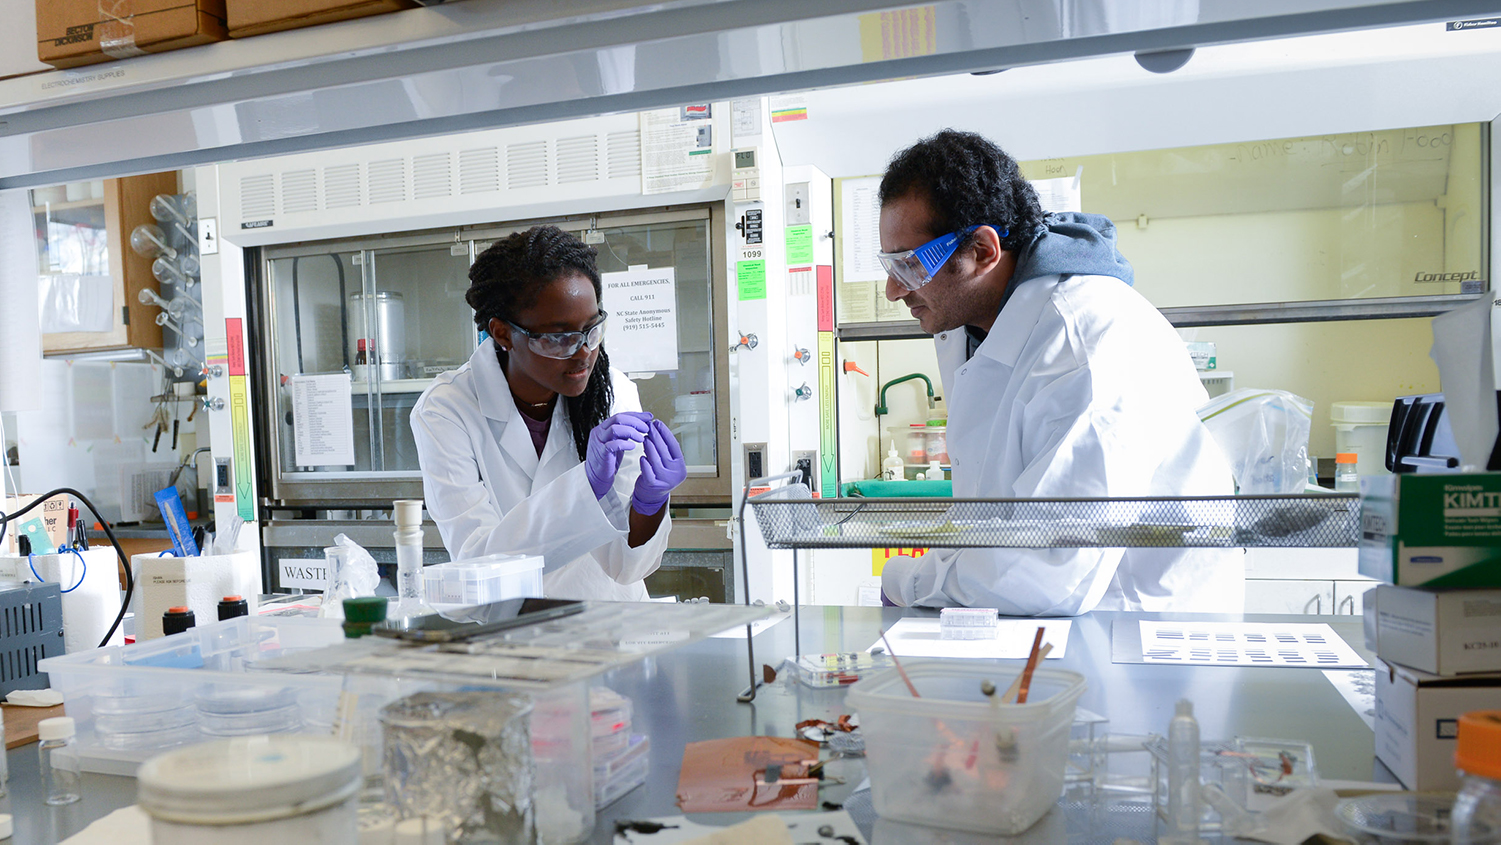 Two students in white lab coats examine a sample in a lab.